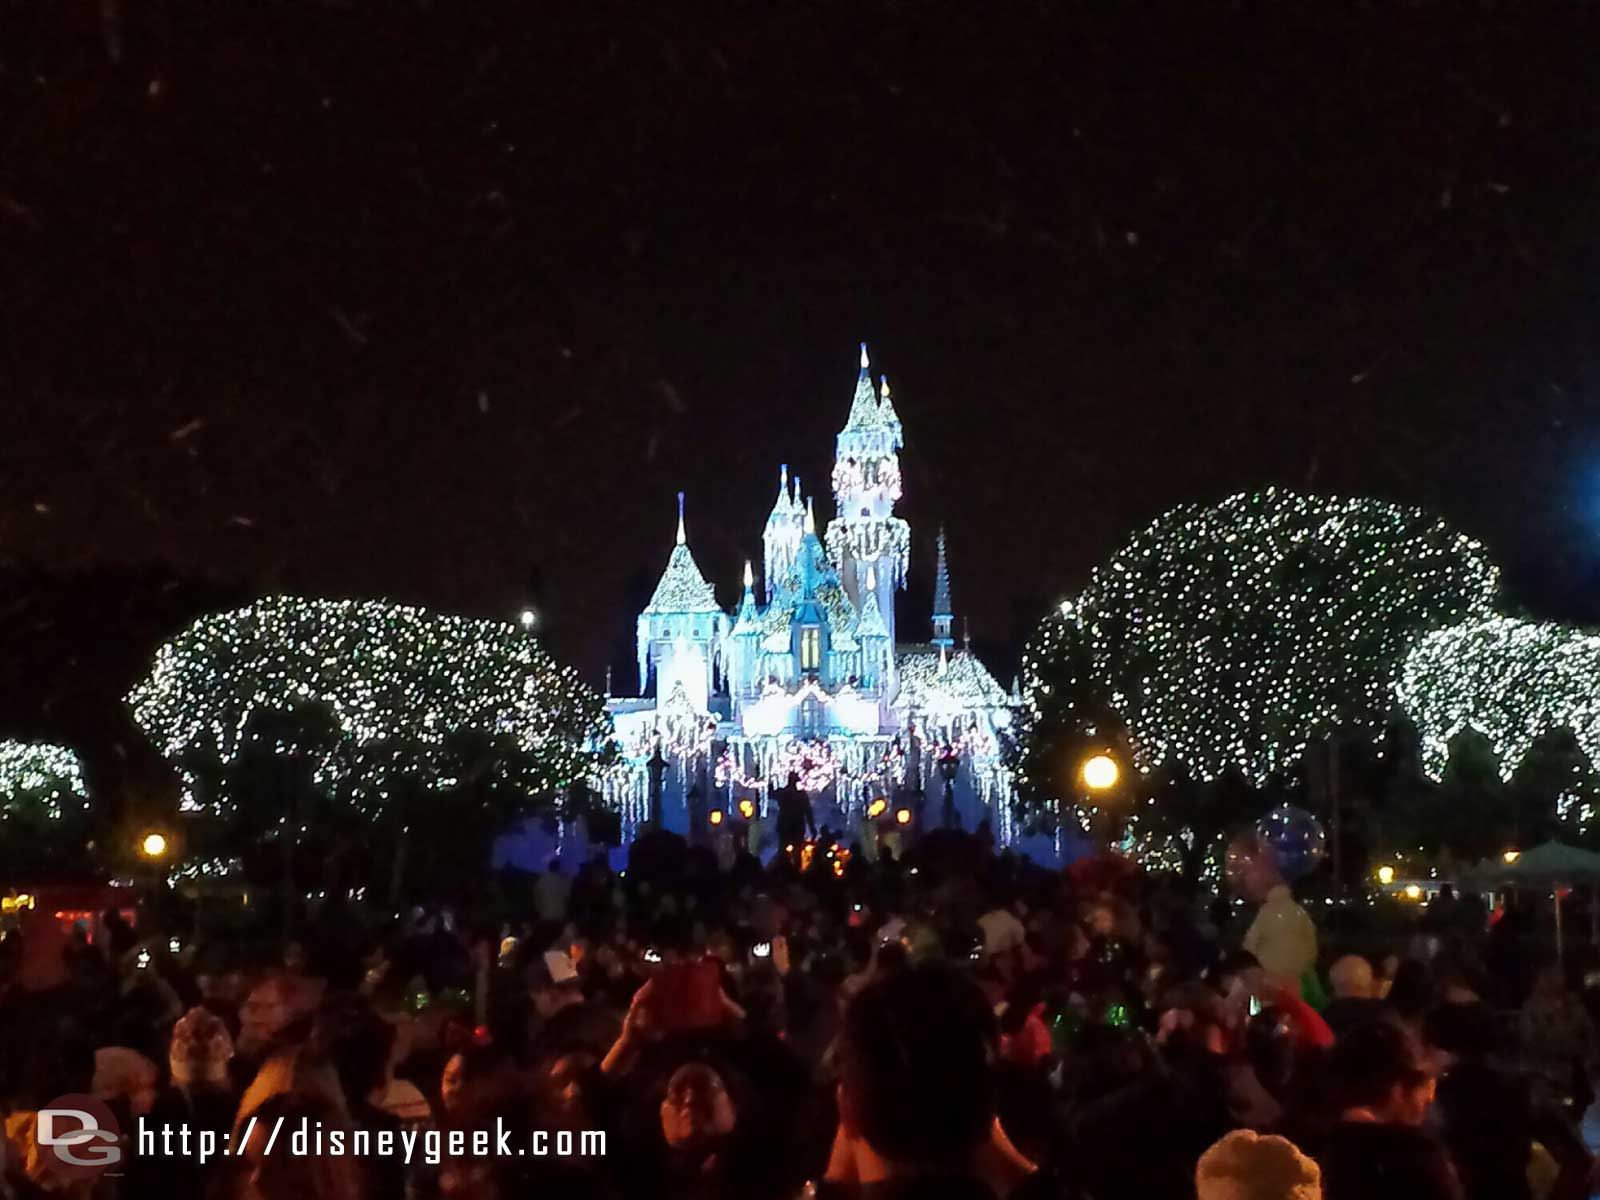 Wintertime Enchantment moment on Main Street USA #Disneyland